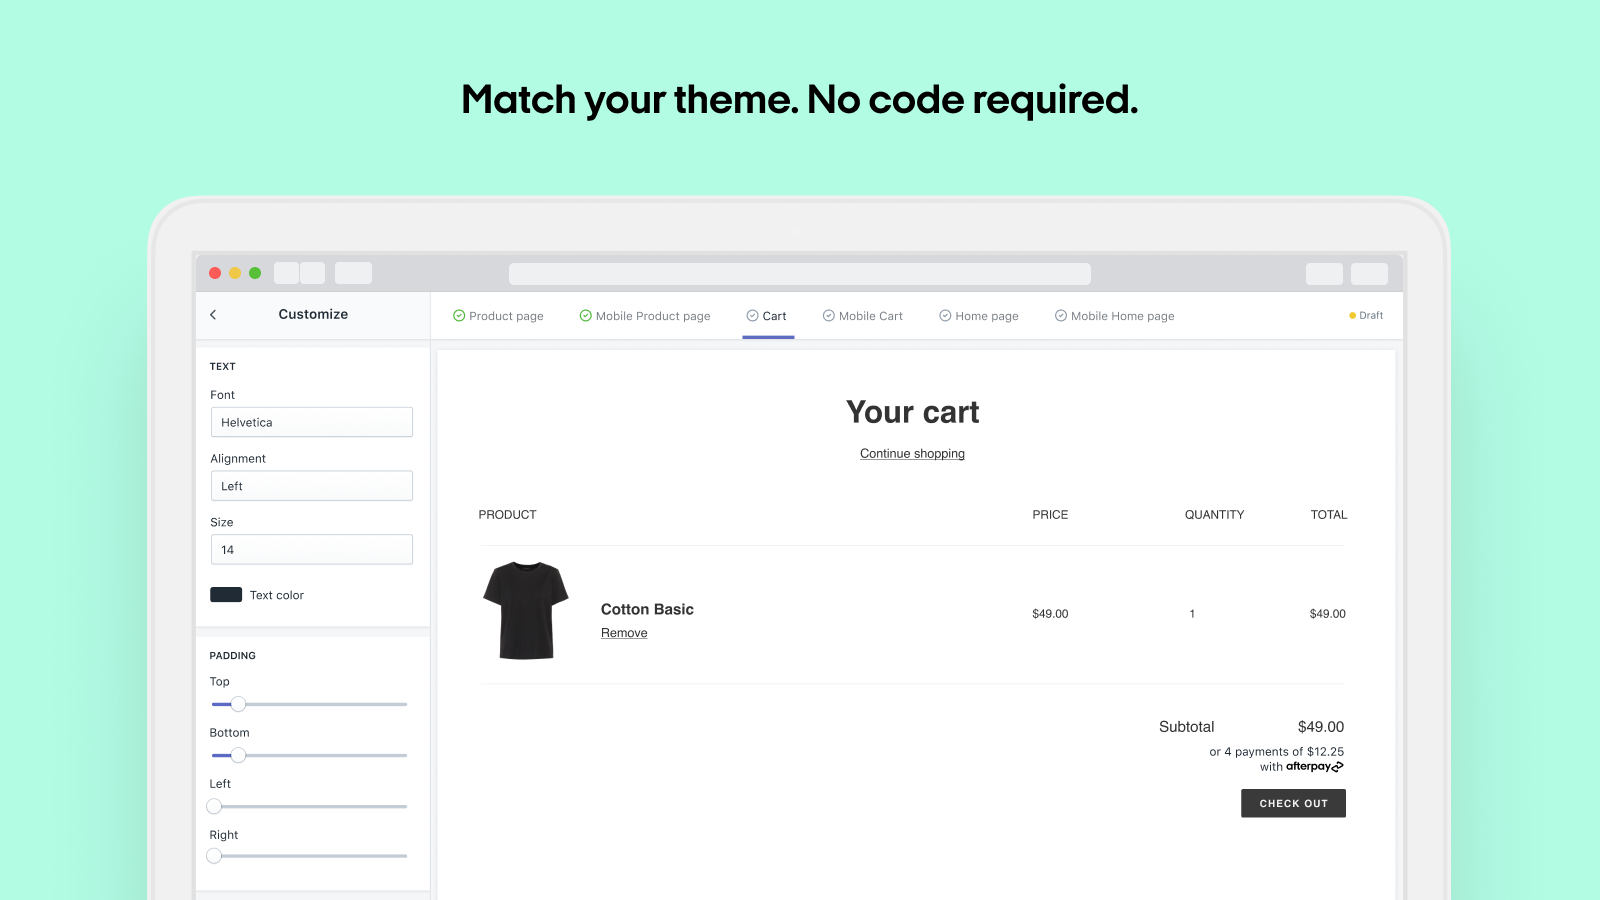 Match your theme. No code required.